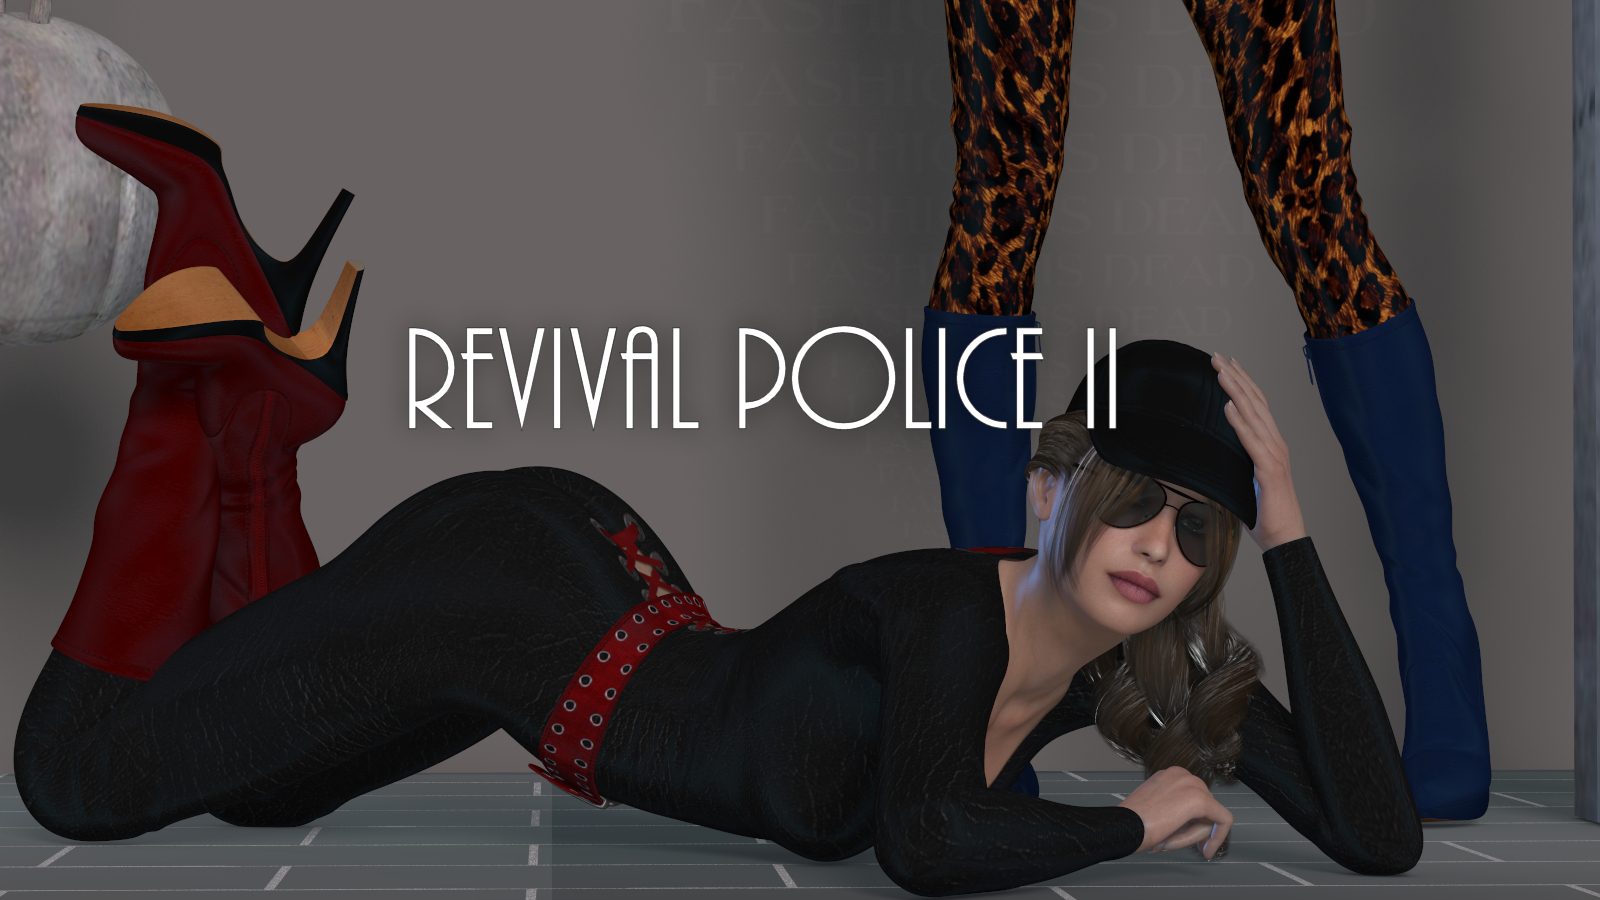 Revival for Police II